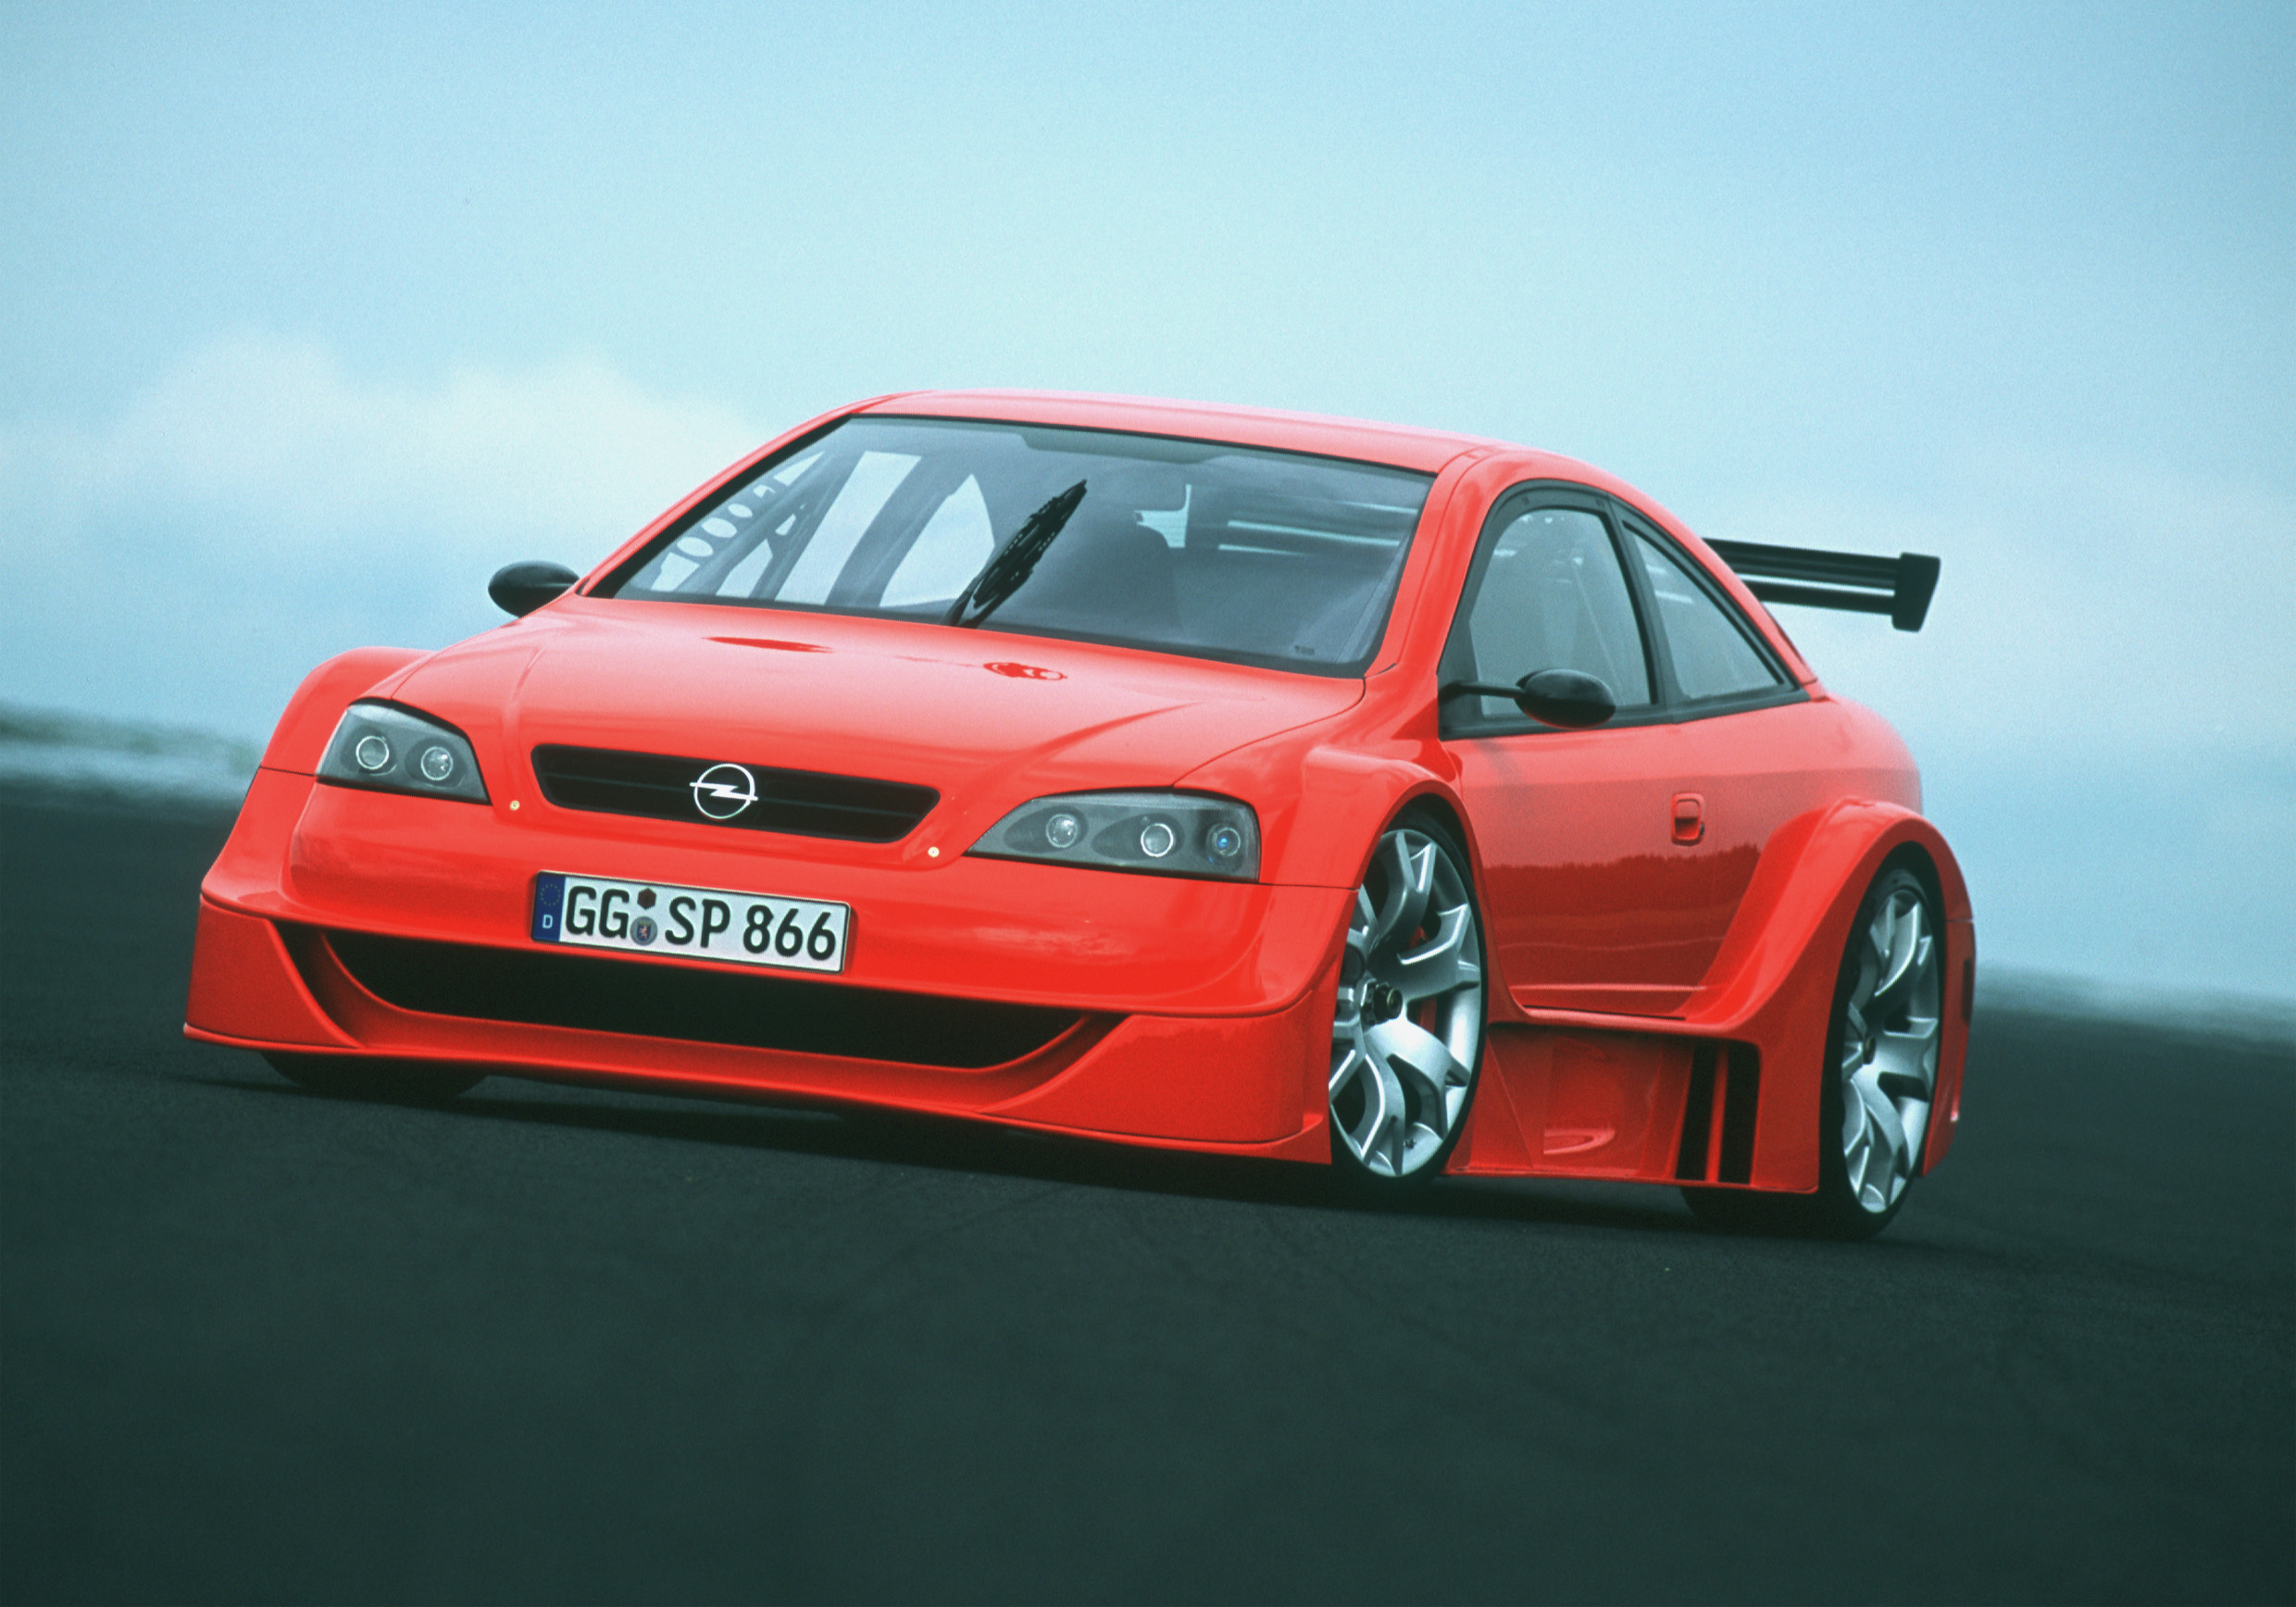 2001 opel astra coupe opc x treme hd pictures. Black Bedroom Furniture Sets. Home Design Ideas